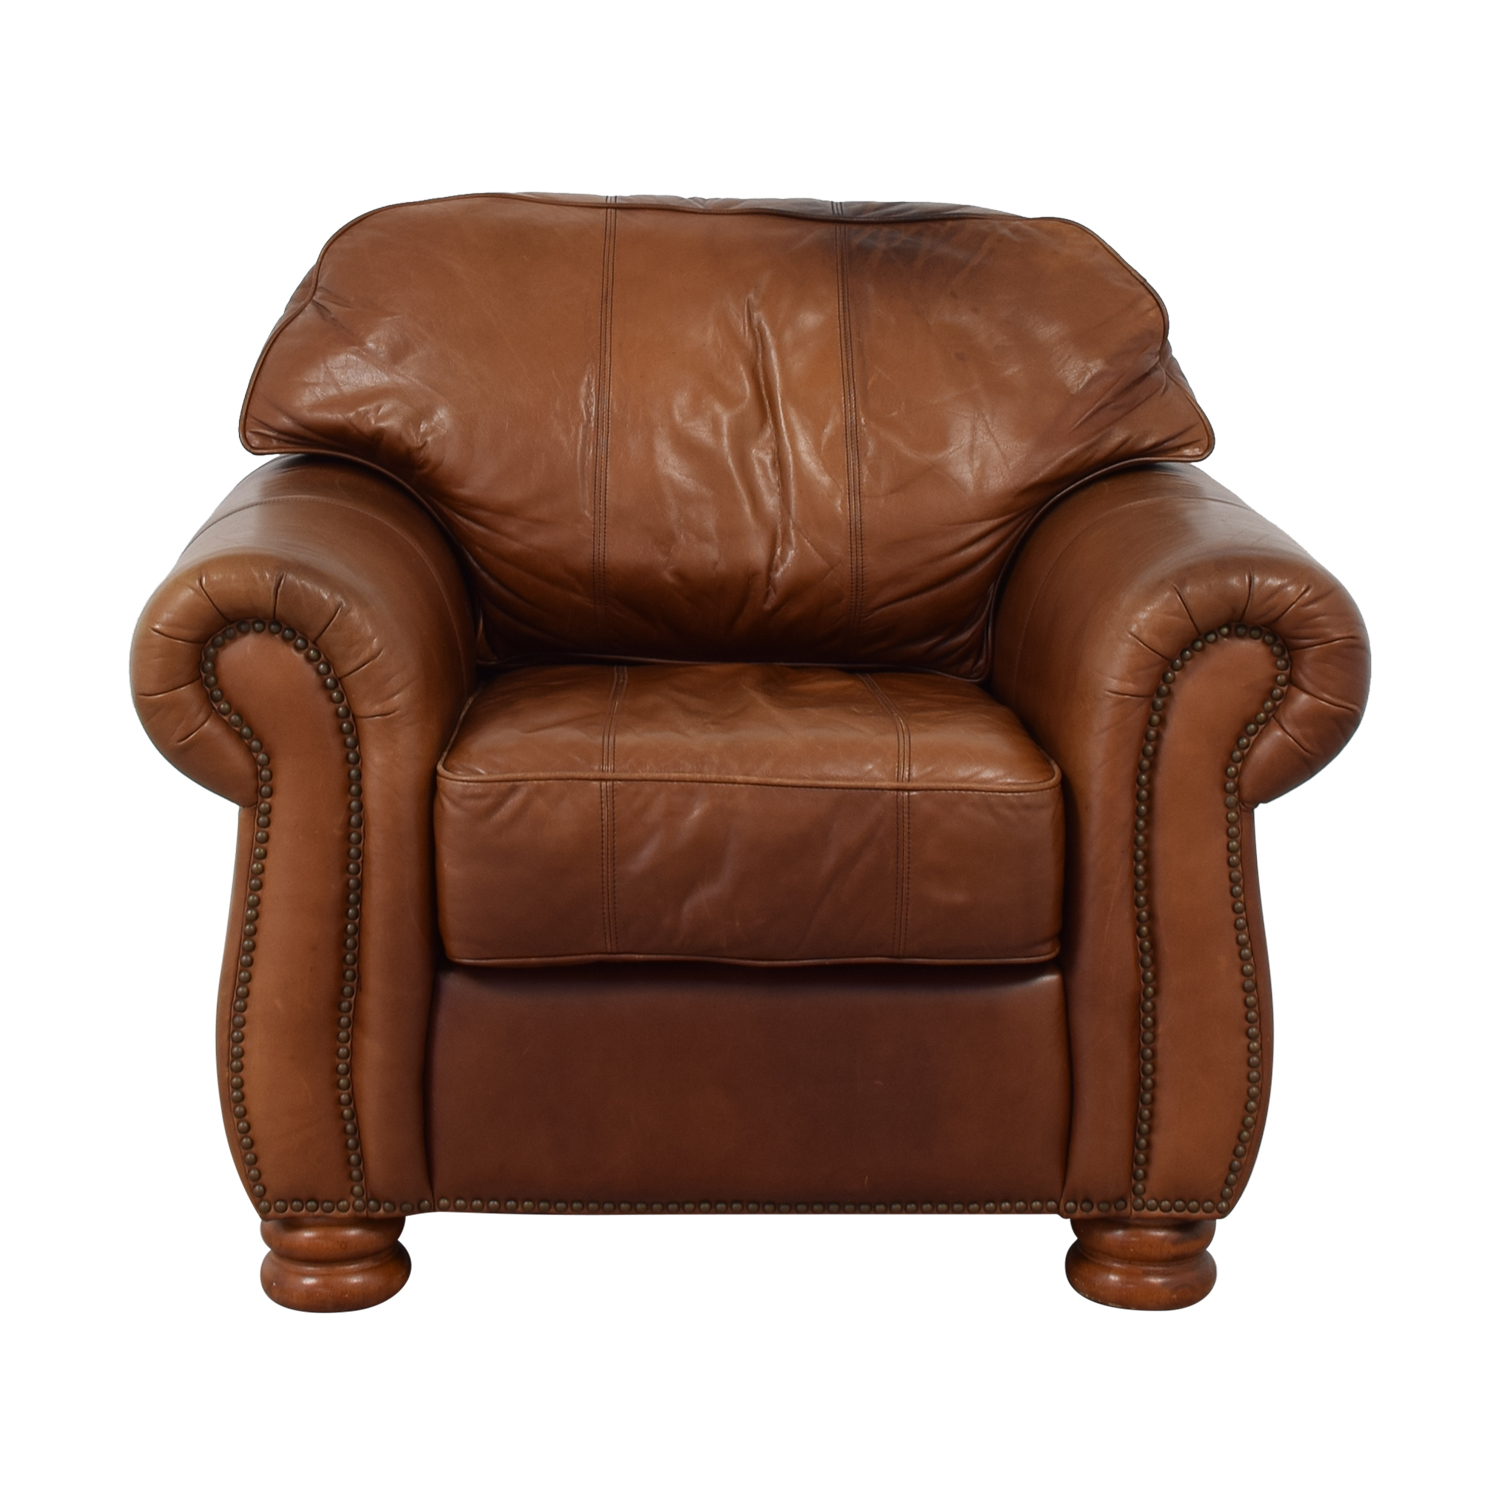 Thomasville Thomasville Leather Sofa Chair for sale